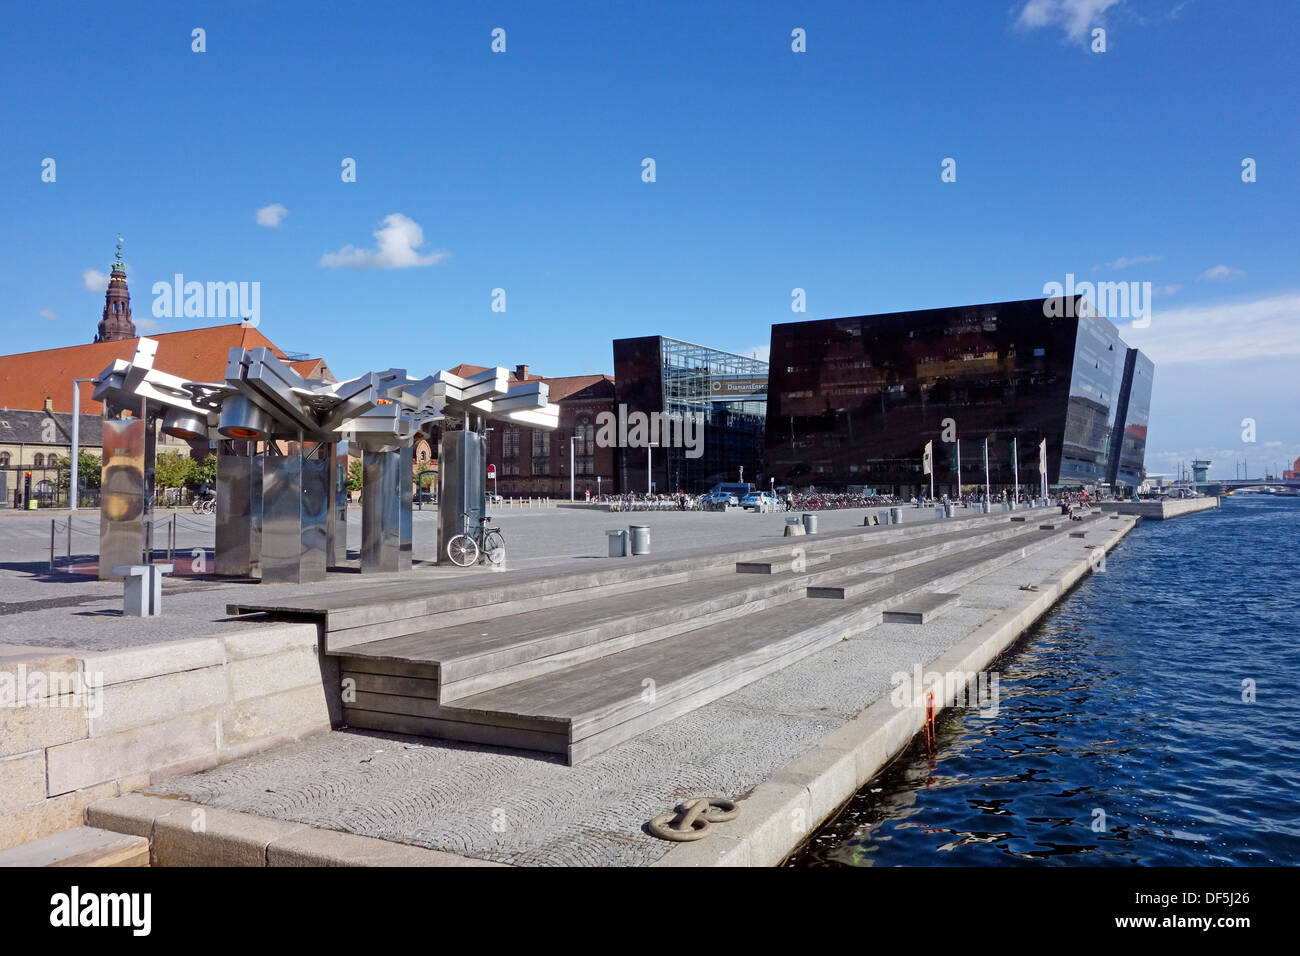 The Royal Danish Library  is housed in the building termed Black Diamond spectacularly located on the waterfront in Copenhagen - Stock Image